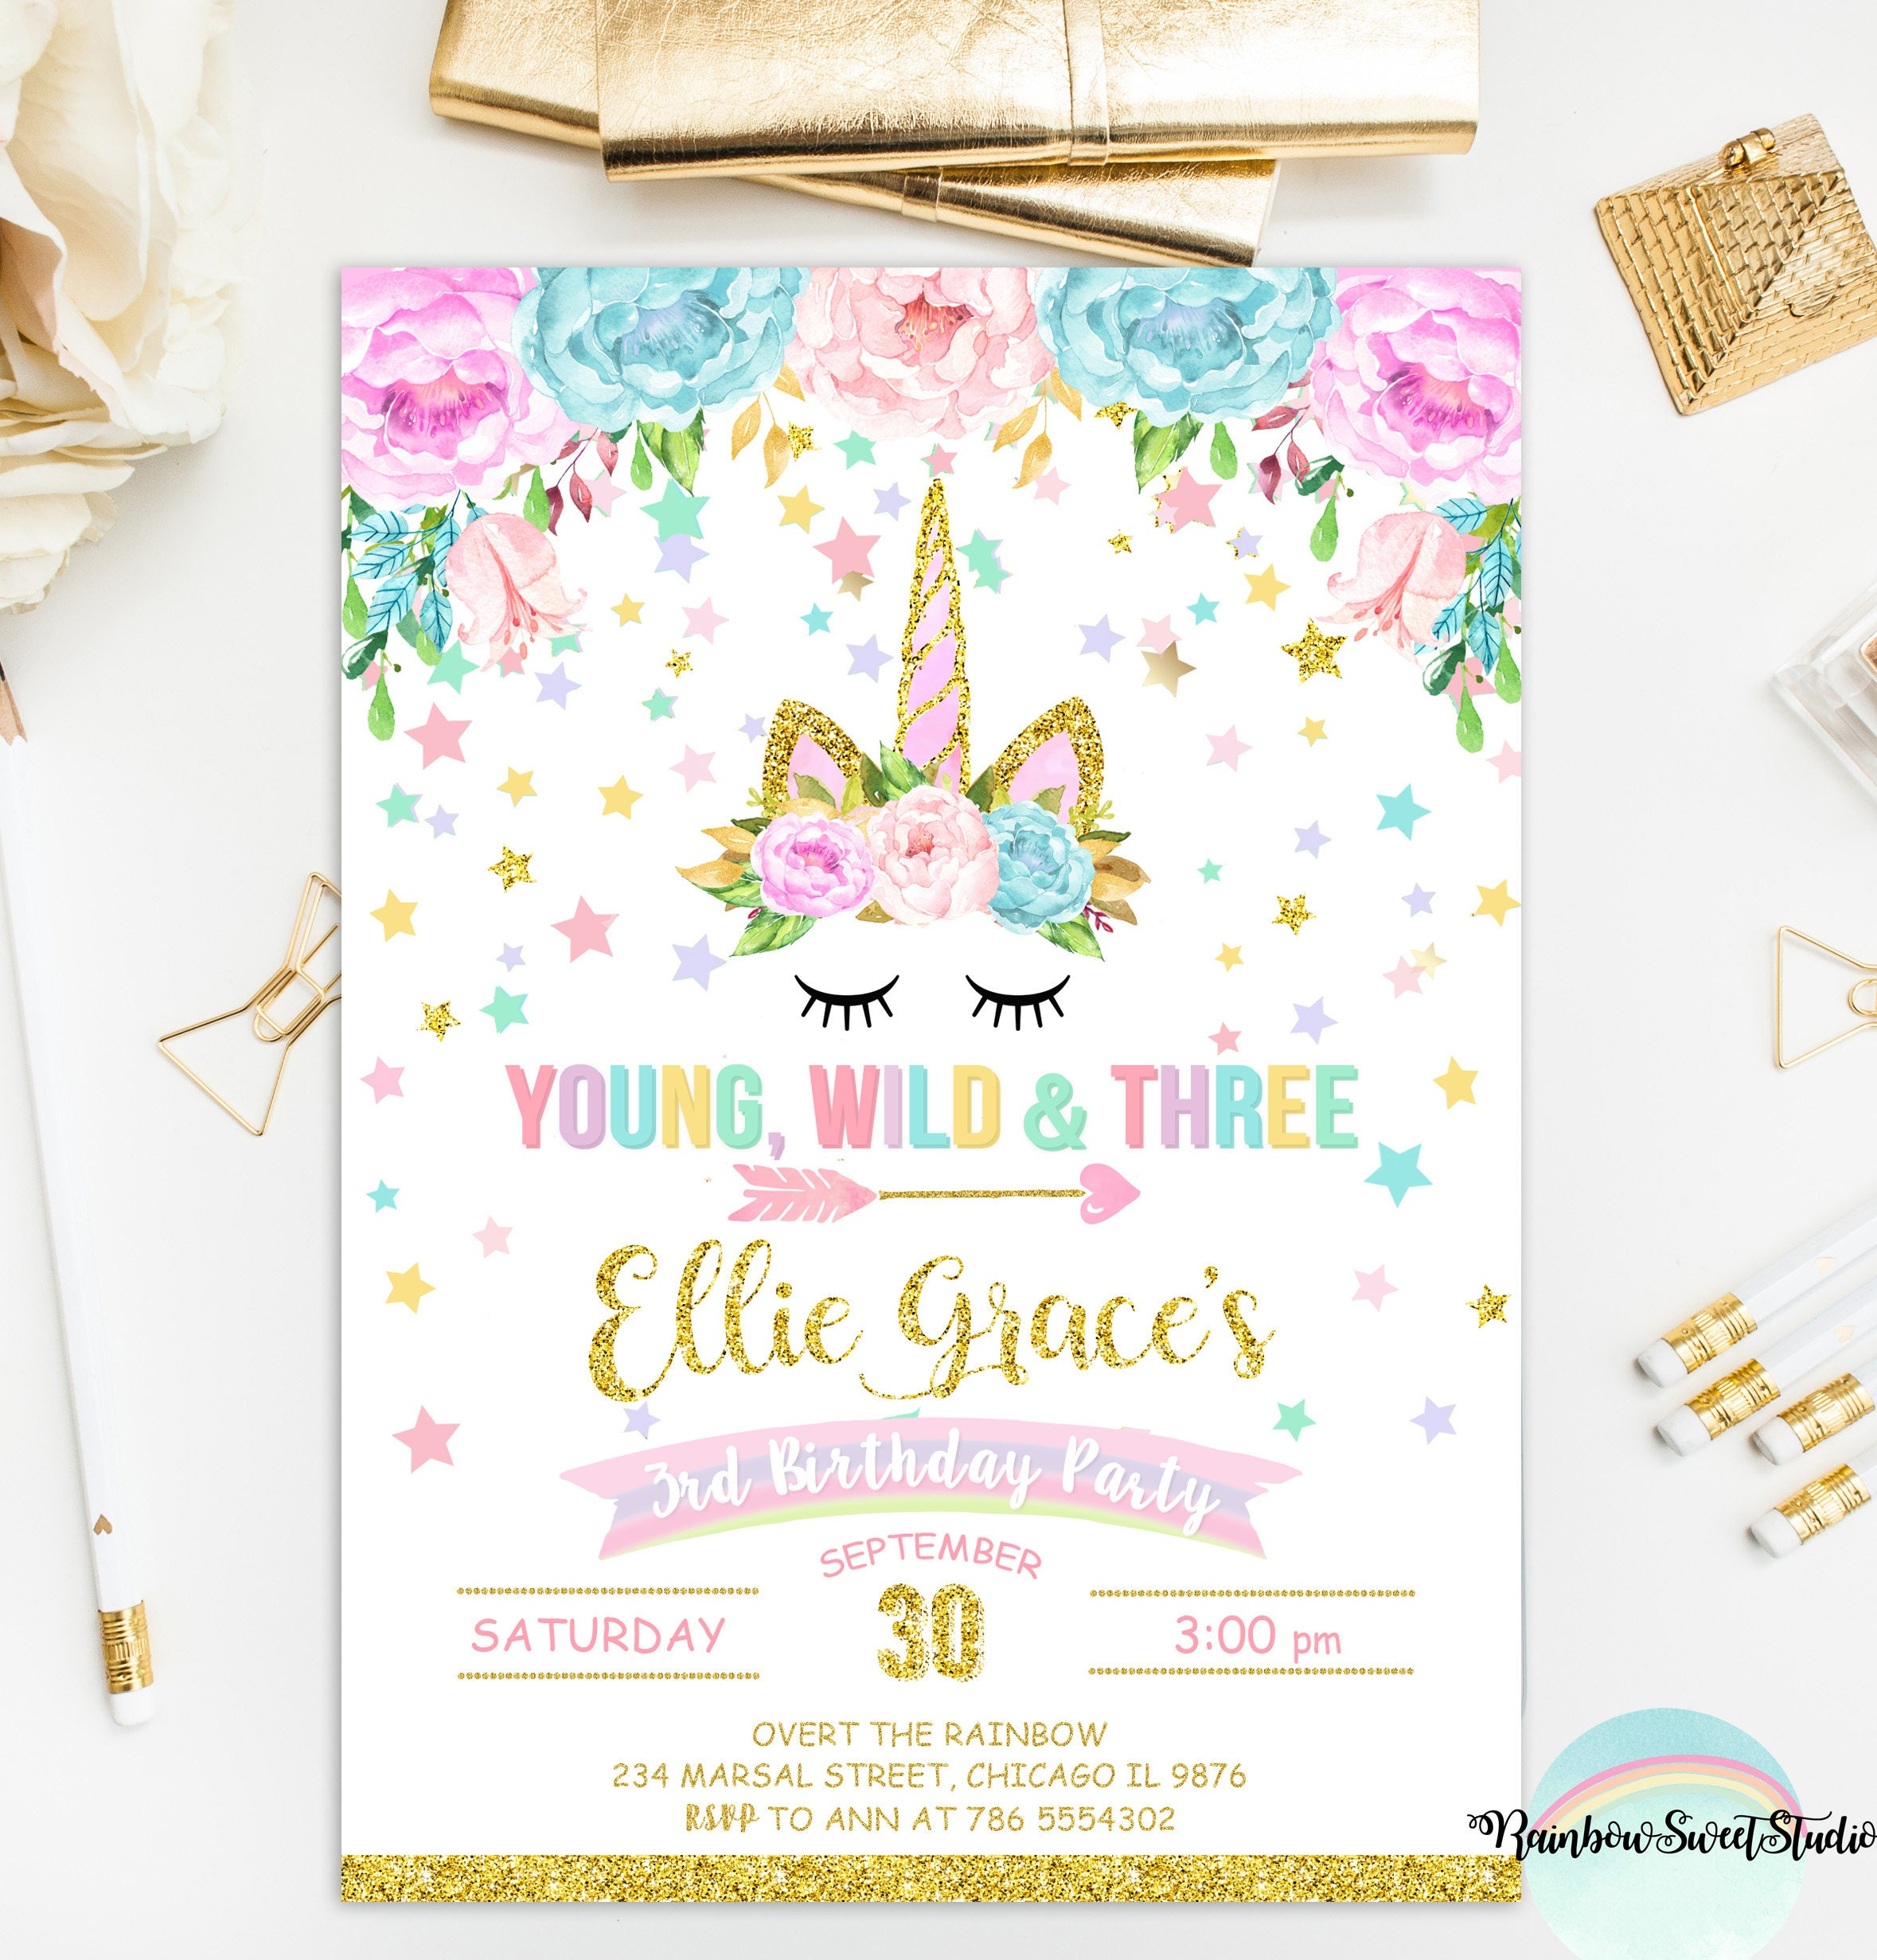 Unicorn young wild and three invitation unicorn birthday description unicorn invitation stopboris Choice Image